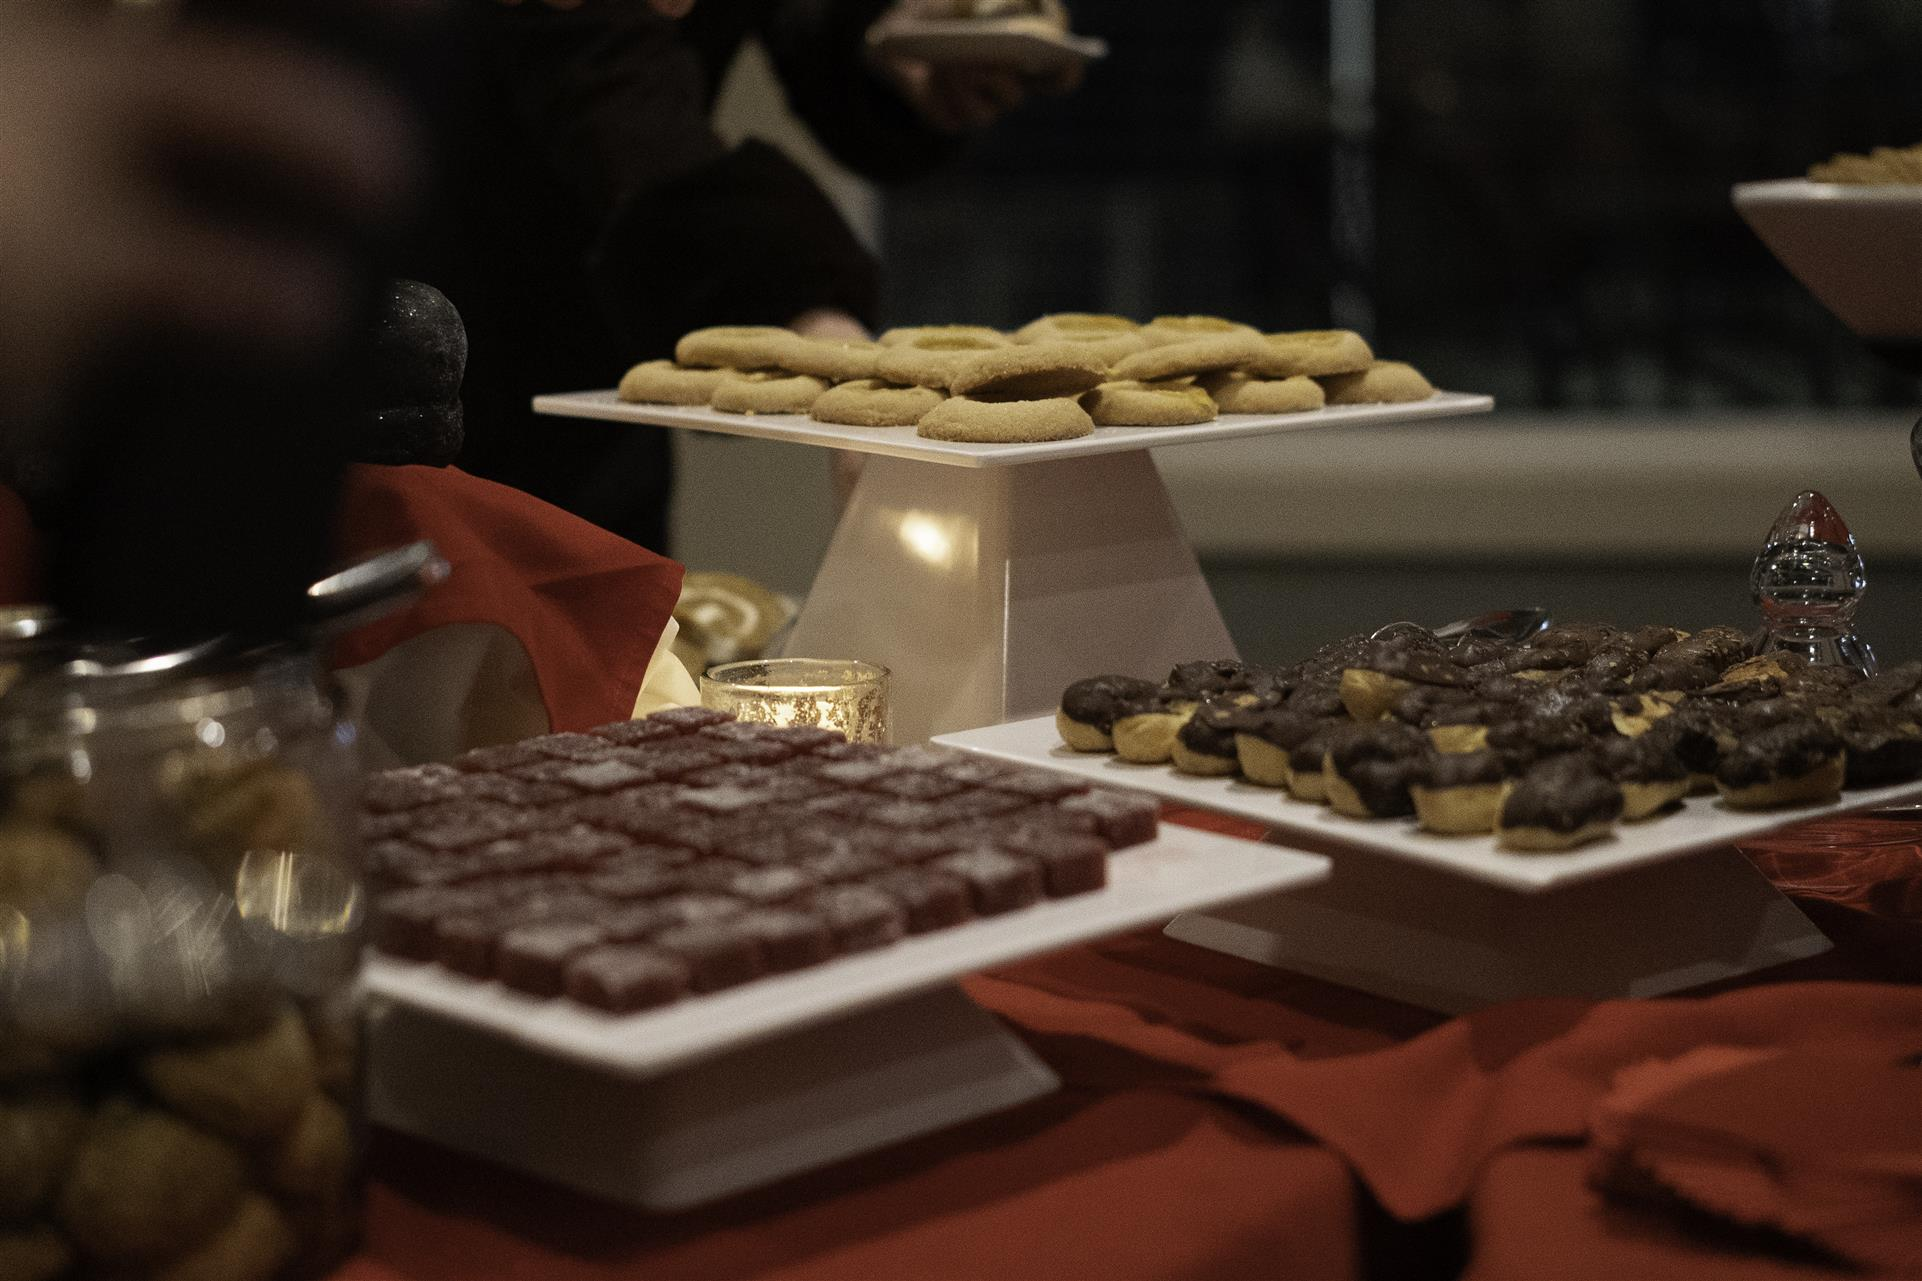 small dessert patries on several trays